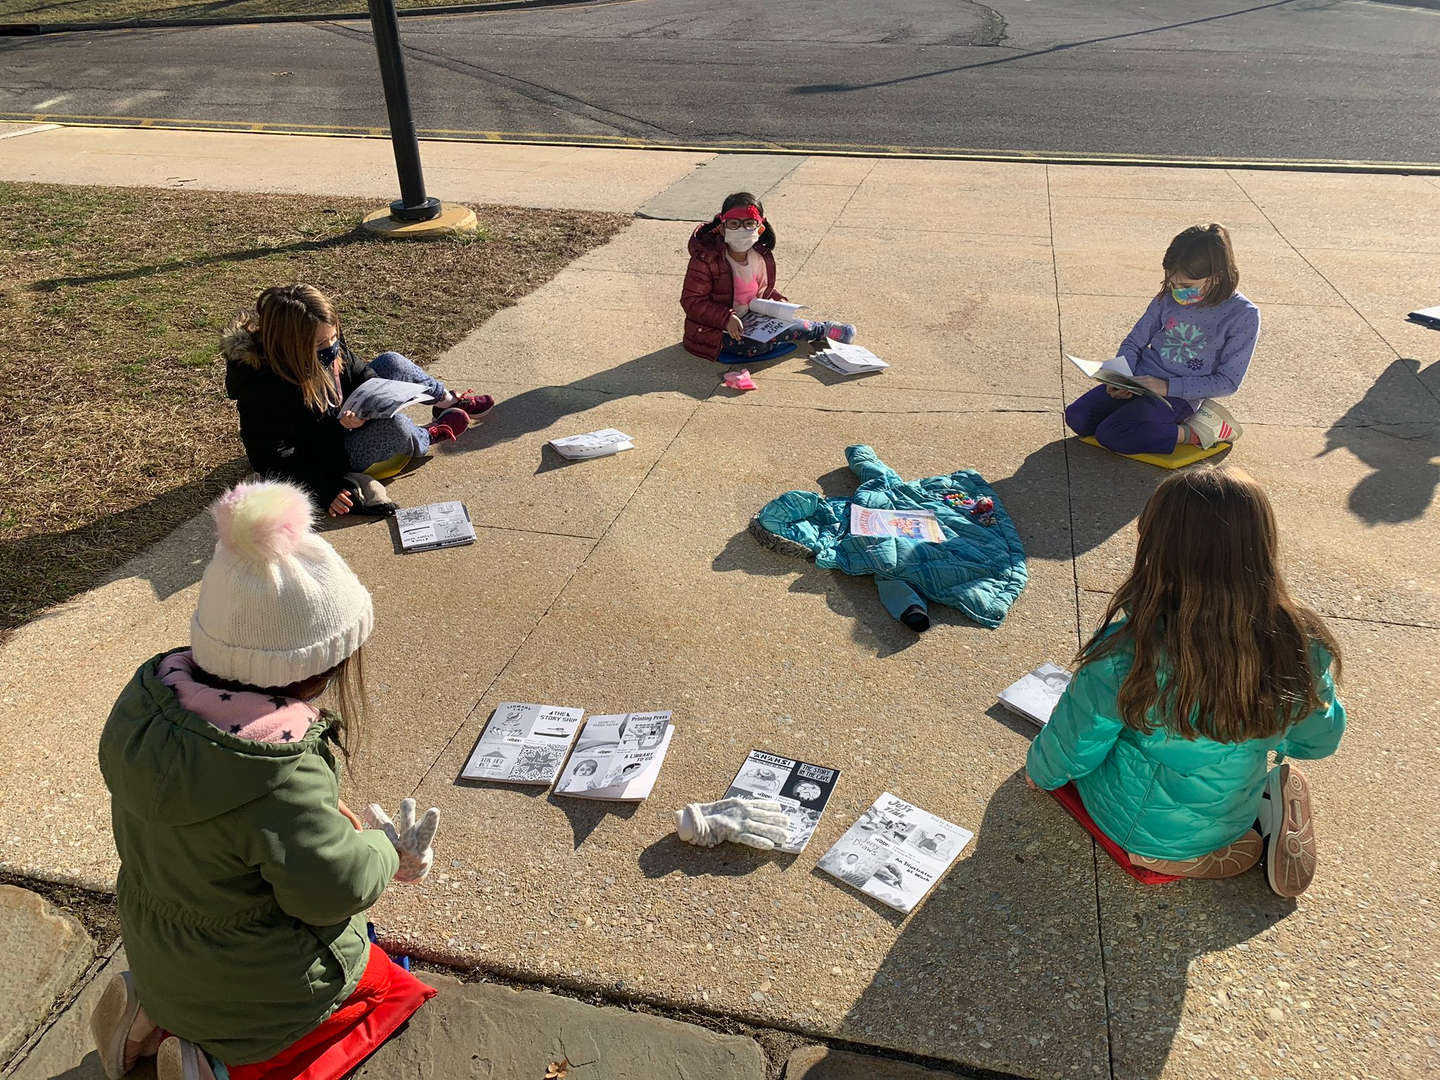 A group of young students reading books outside.